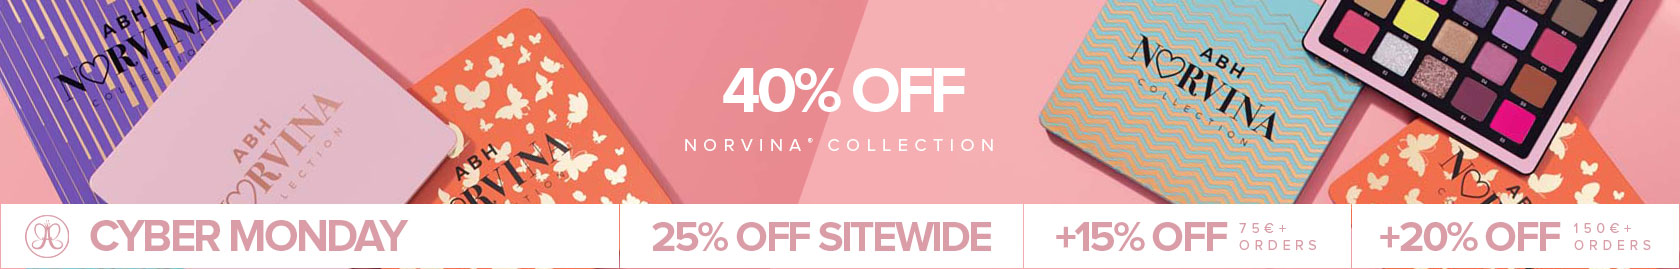 40% off Norvina Collection | 25% off sitewide | +10% off when you spend 75€ | +15% off when you spend 150€